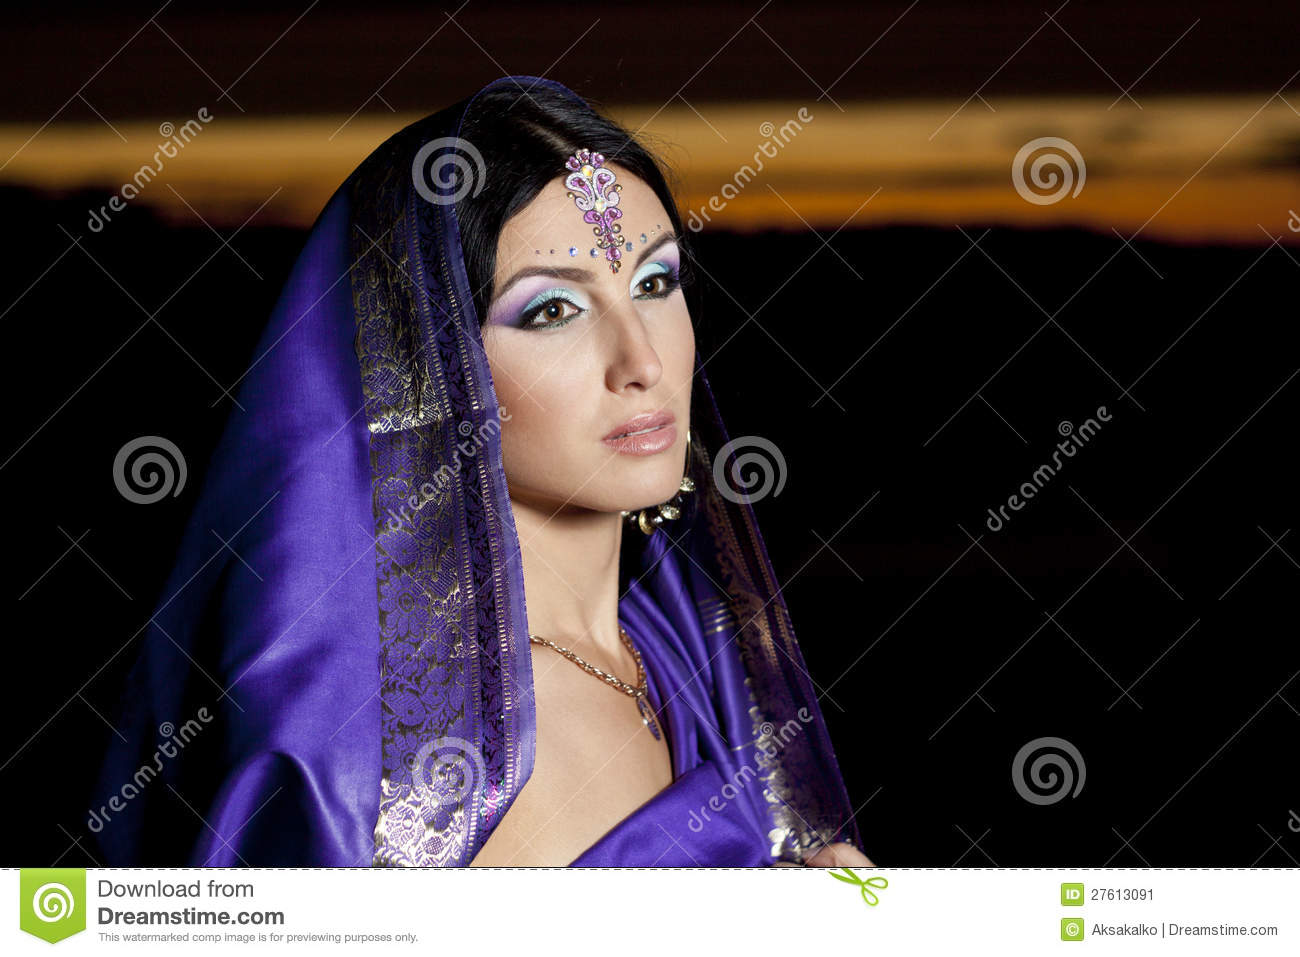 burnet hindu single women 7 reasons not to marry an indian woman why are most of men here talking shi about indian or any women when it comes to dating or marrying a female in any.